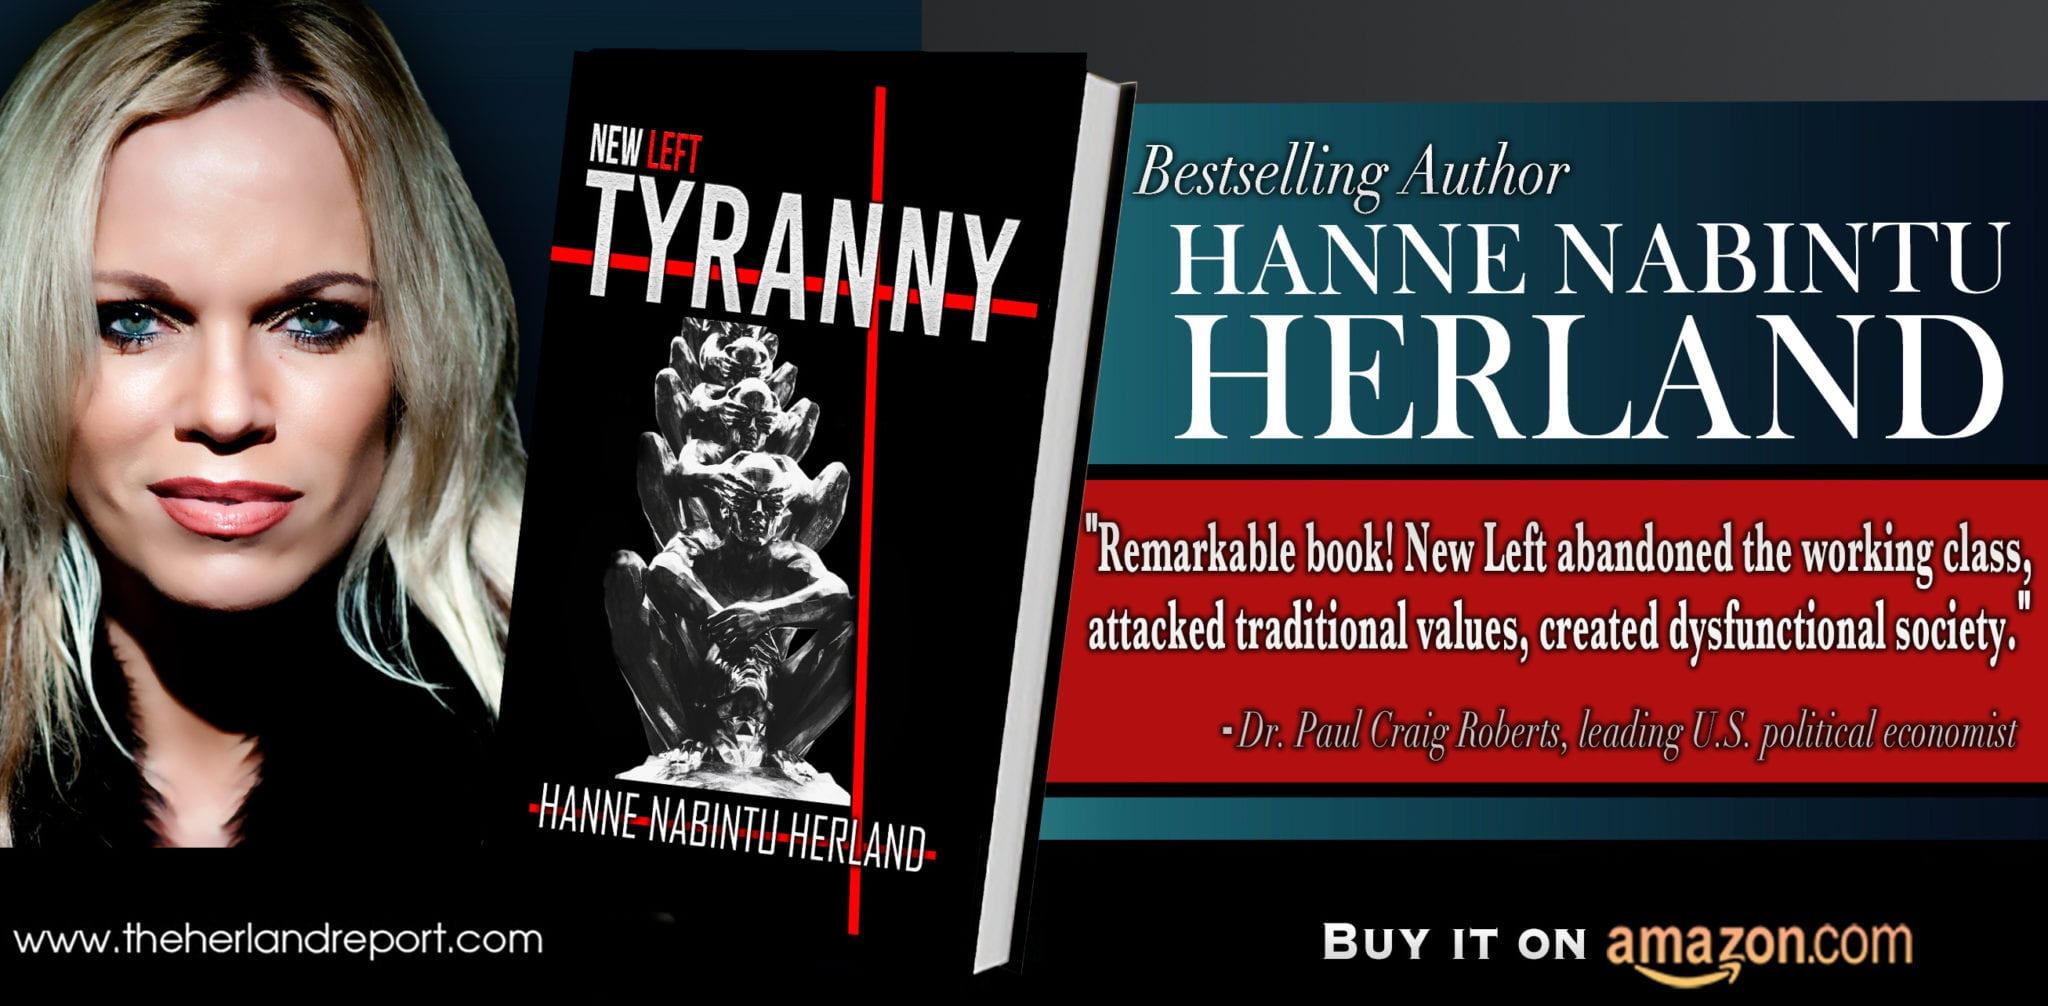 New Left Tyranny, by bestselling author Hanne Herland